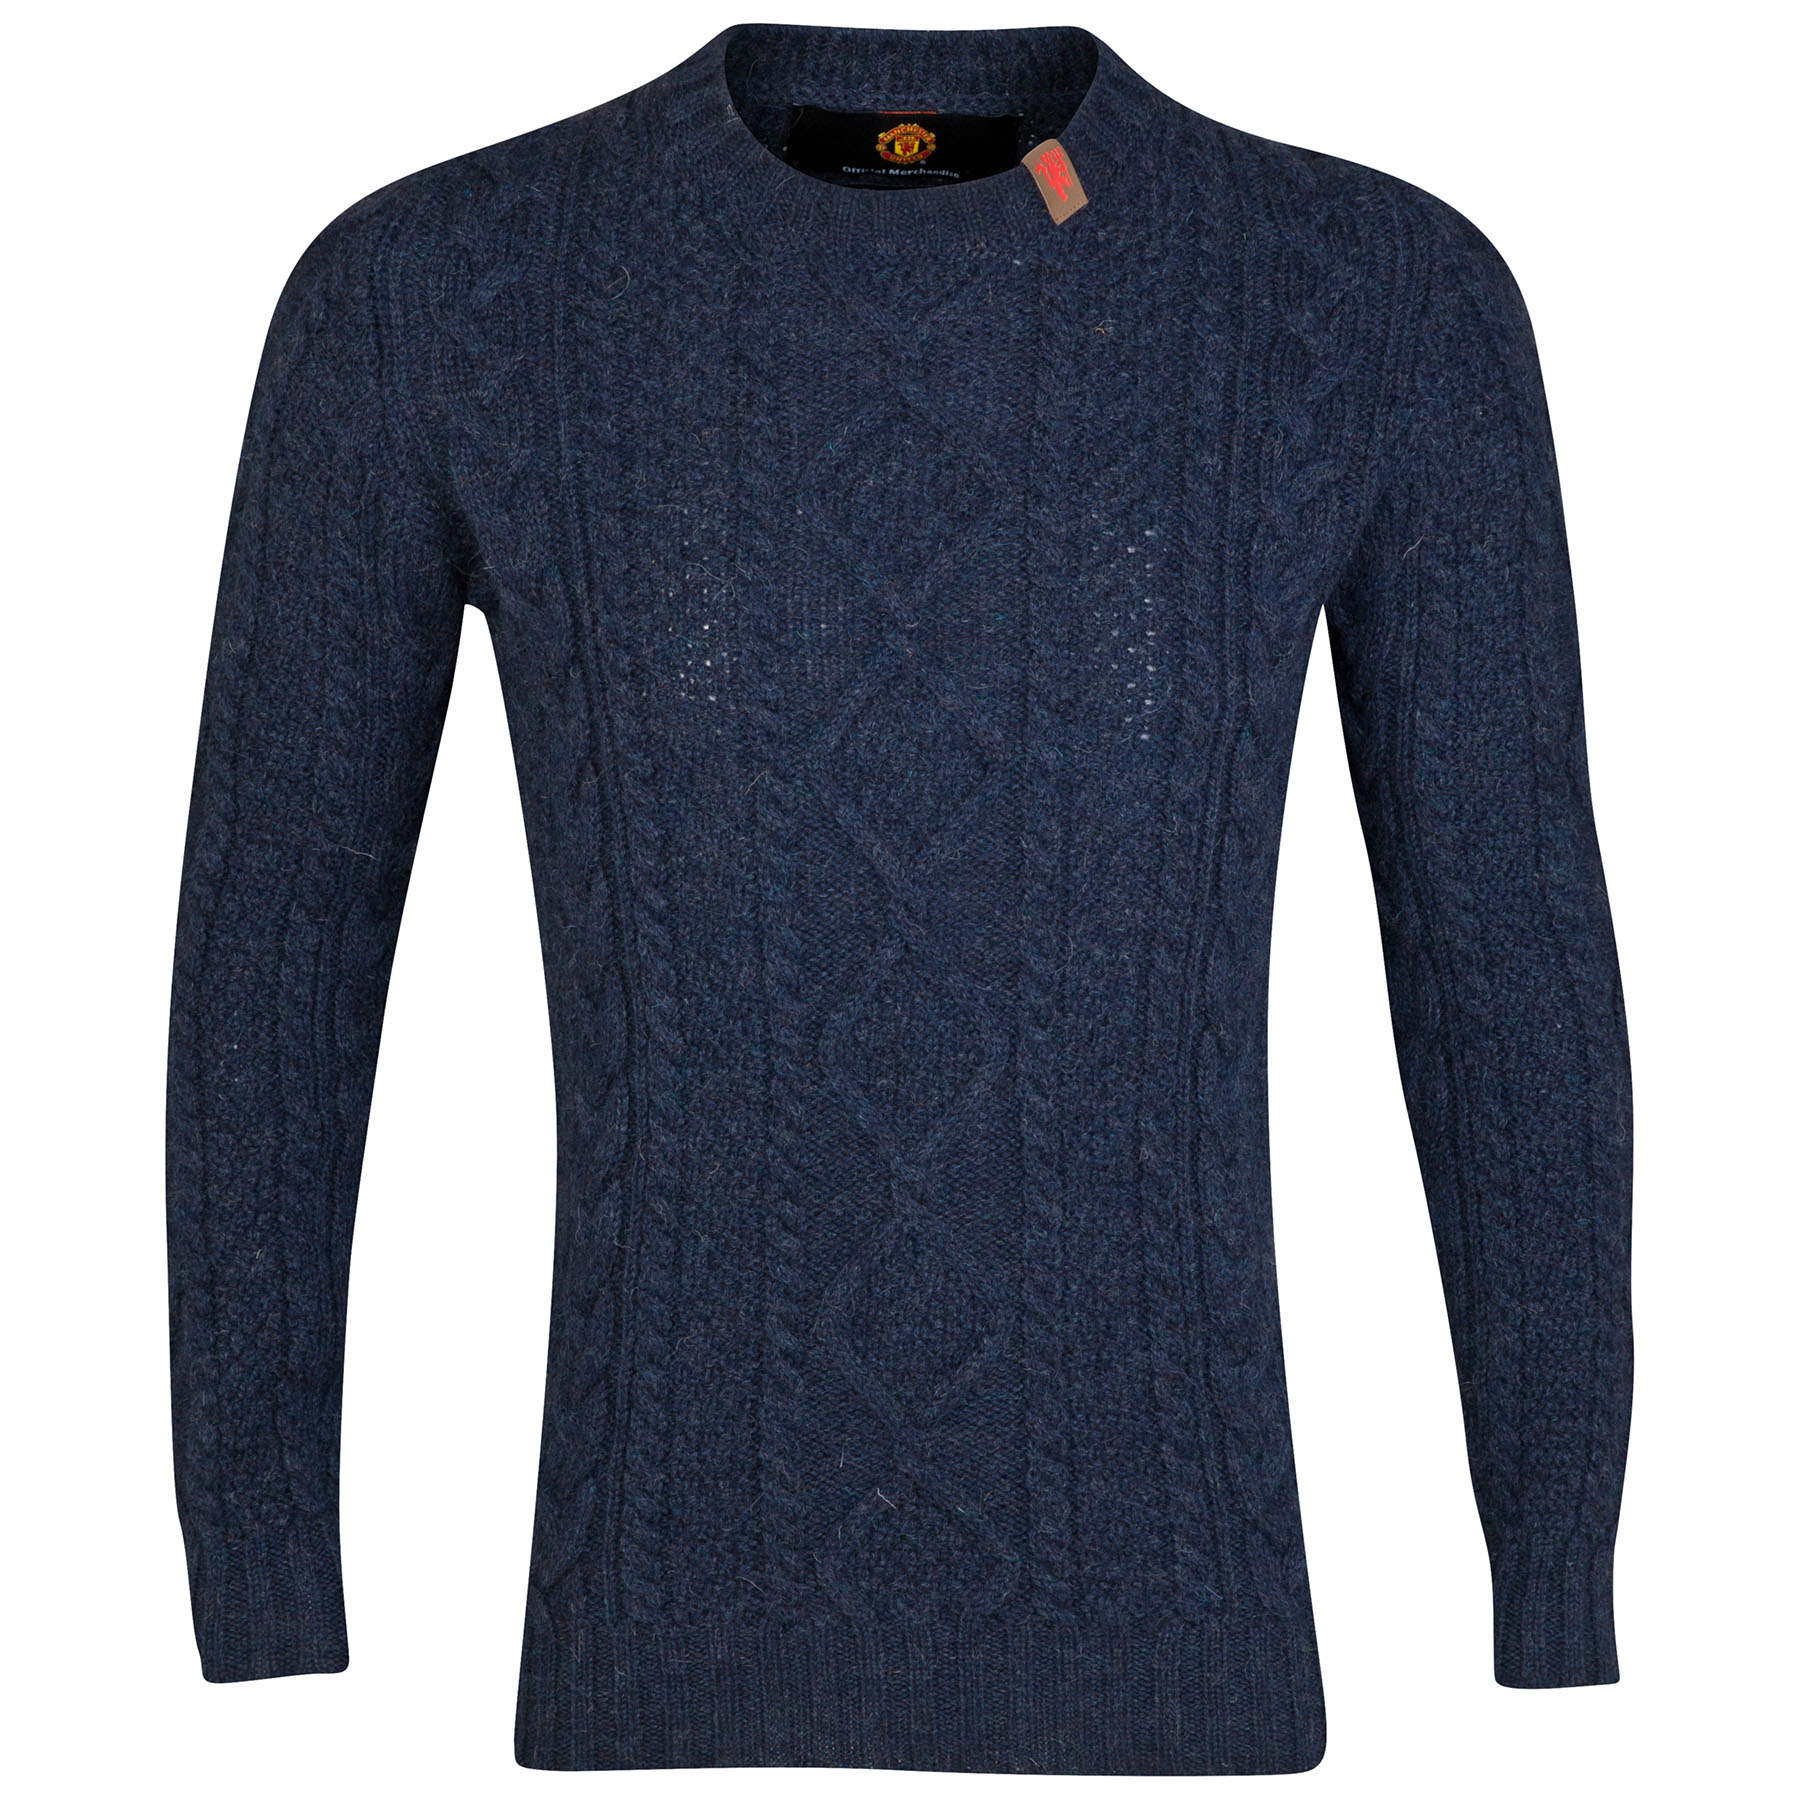 Manchester United British Wool Cable Knit Sweater - Denim - Mens